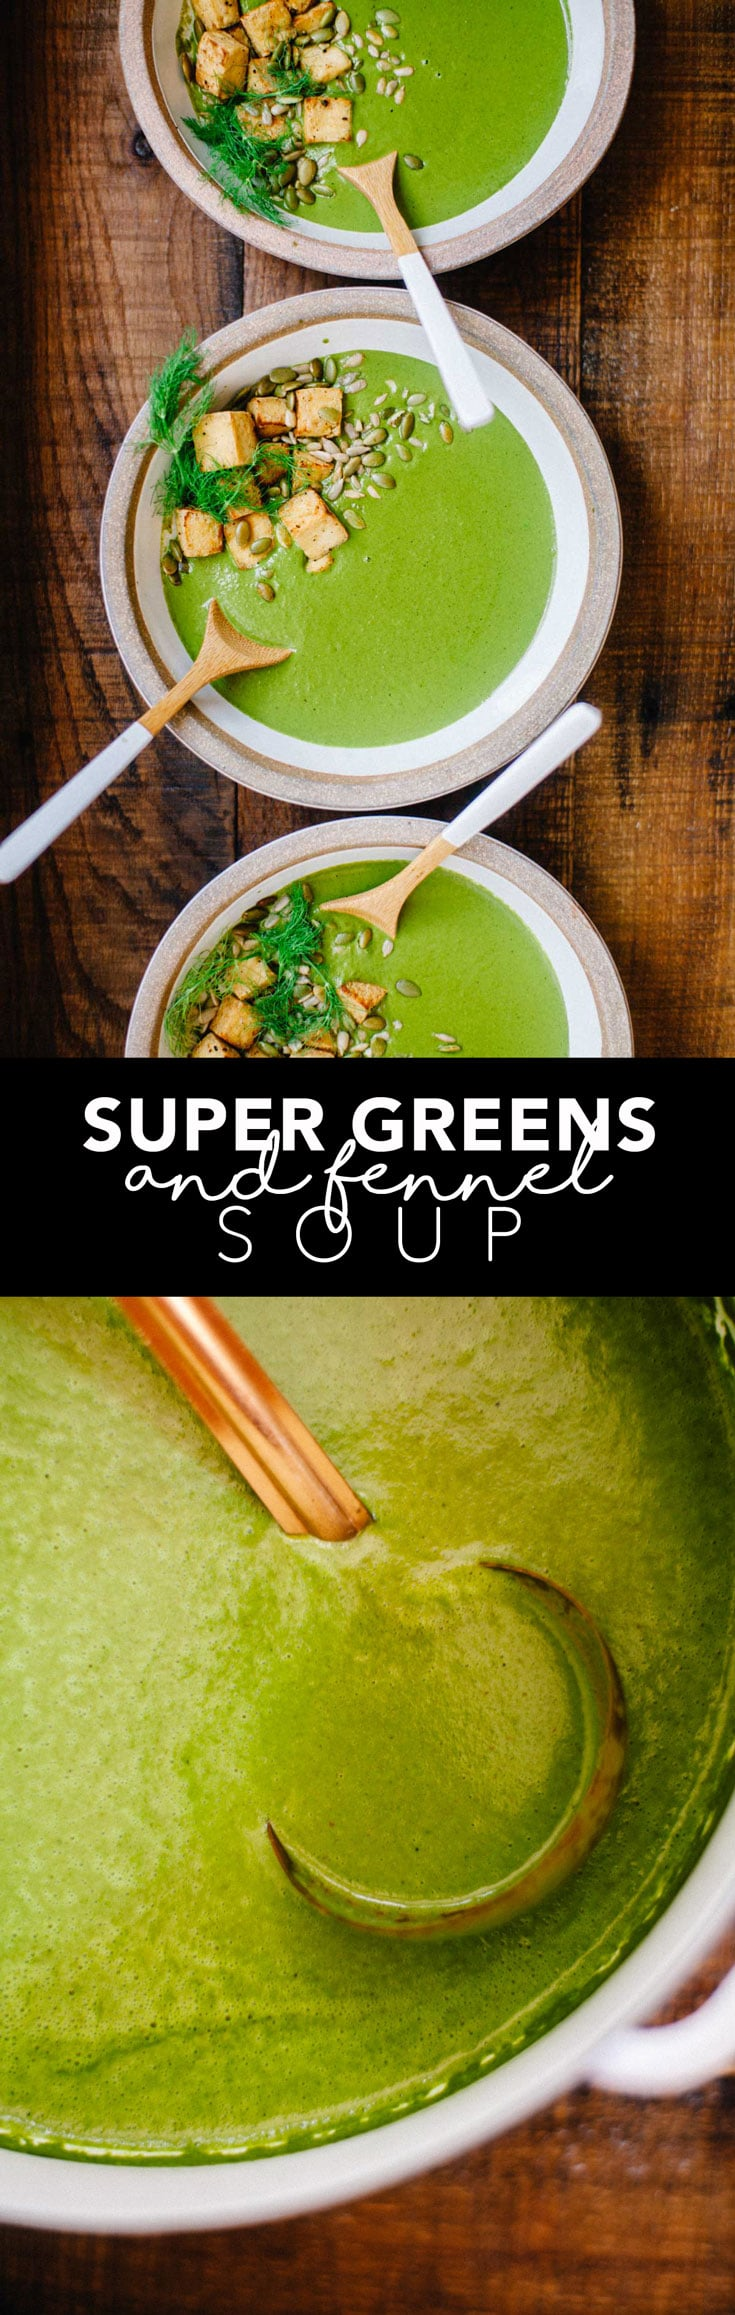 This Super Greens Soup with Fennel and Caraway, packed with 5 types of healthy greens, is perfect to cleanse and comfort your body during the colder months! #soup #recipe #healthy #vegan #brewinghappiness